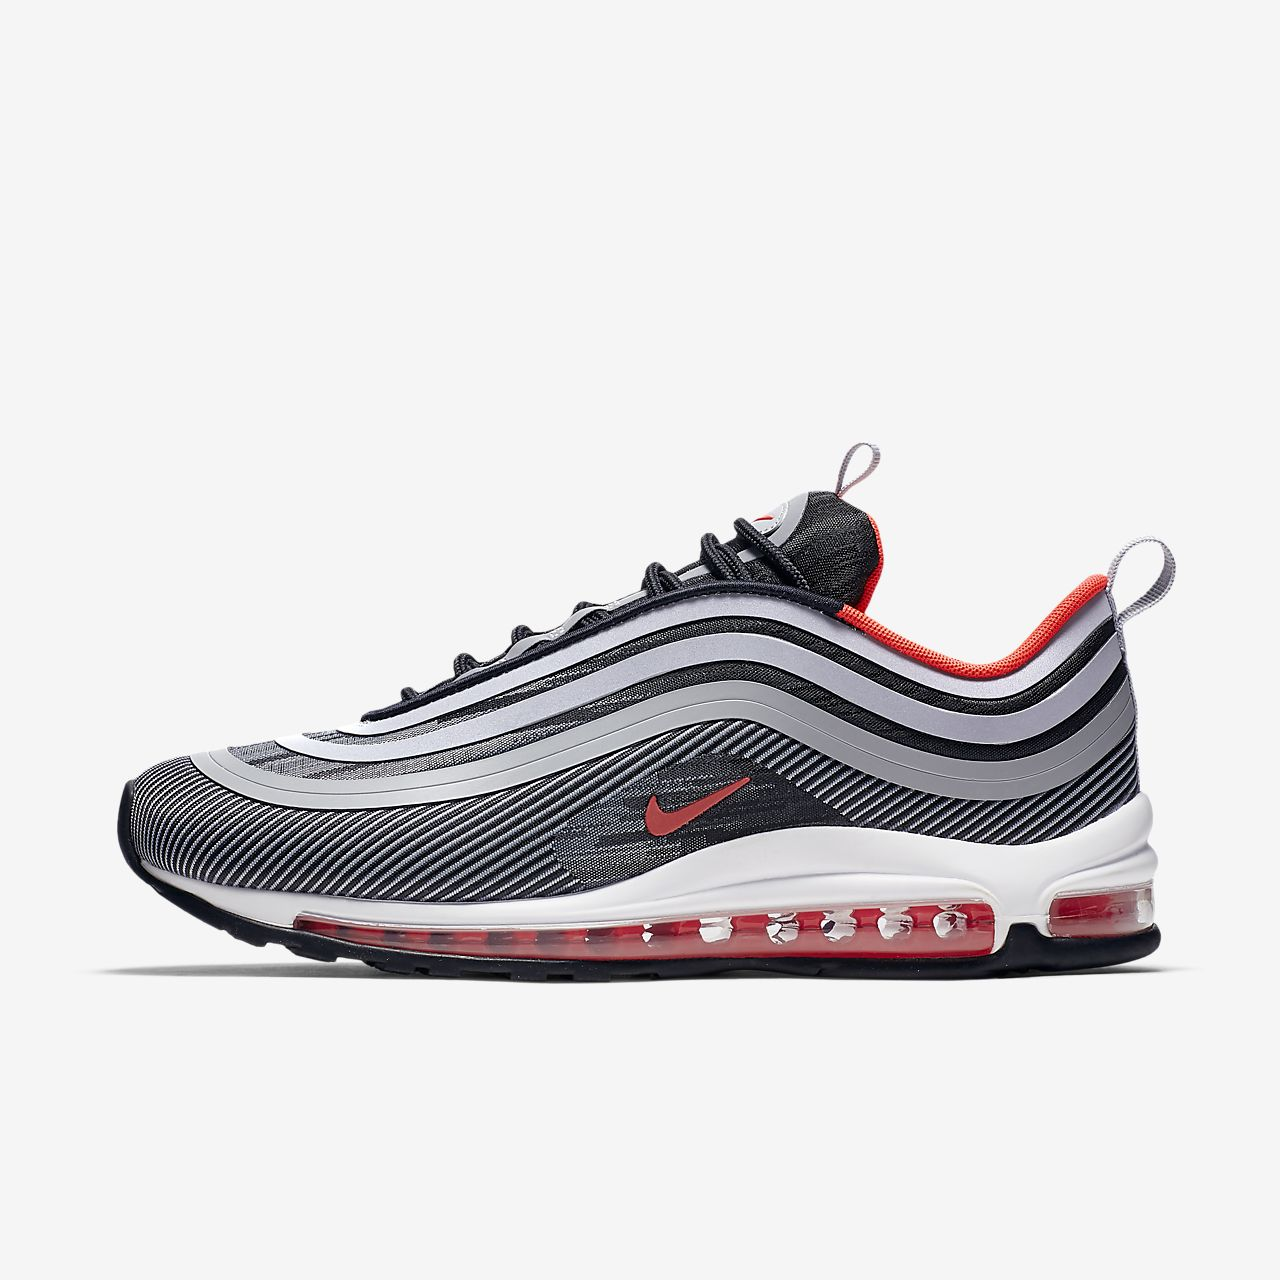 7713c38ac5 Nike Air Max 97 Ultra '17 Men's Shoe. Nike.com VN